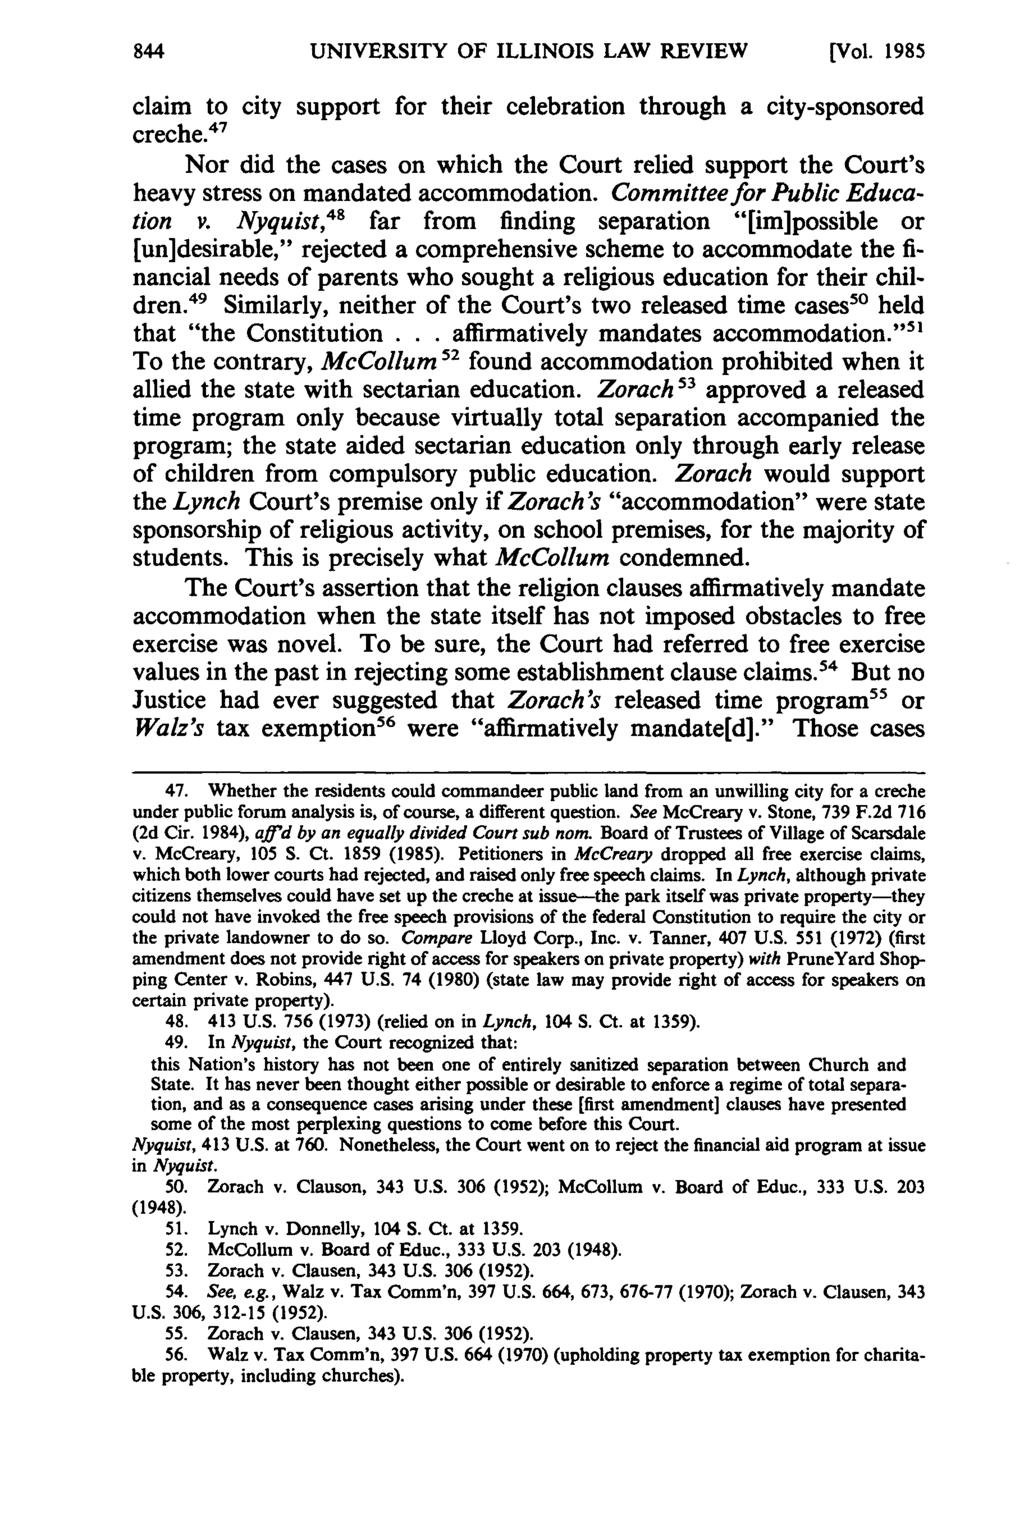 UNIVERSITY OF ILLINOIS LAW REVIEW [Vol. 1985 claim to city support for their celebration through a city-sponsored creche.